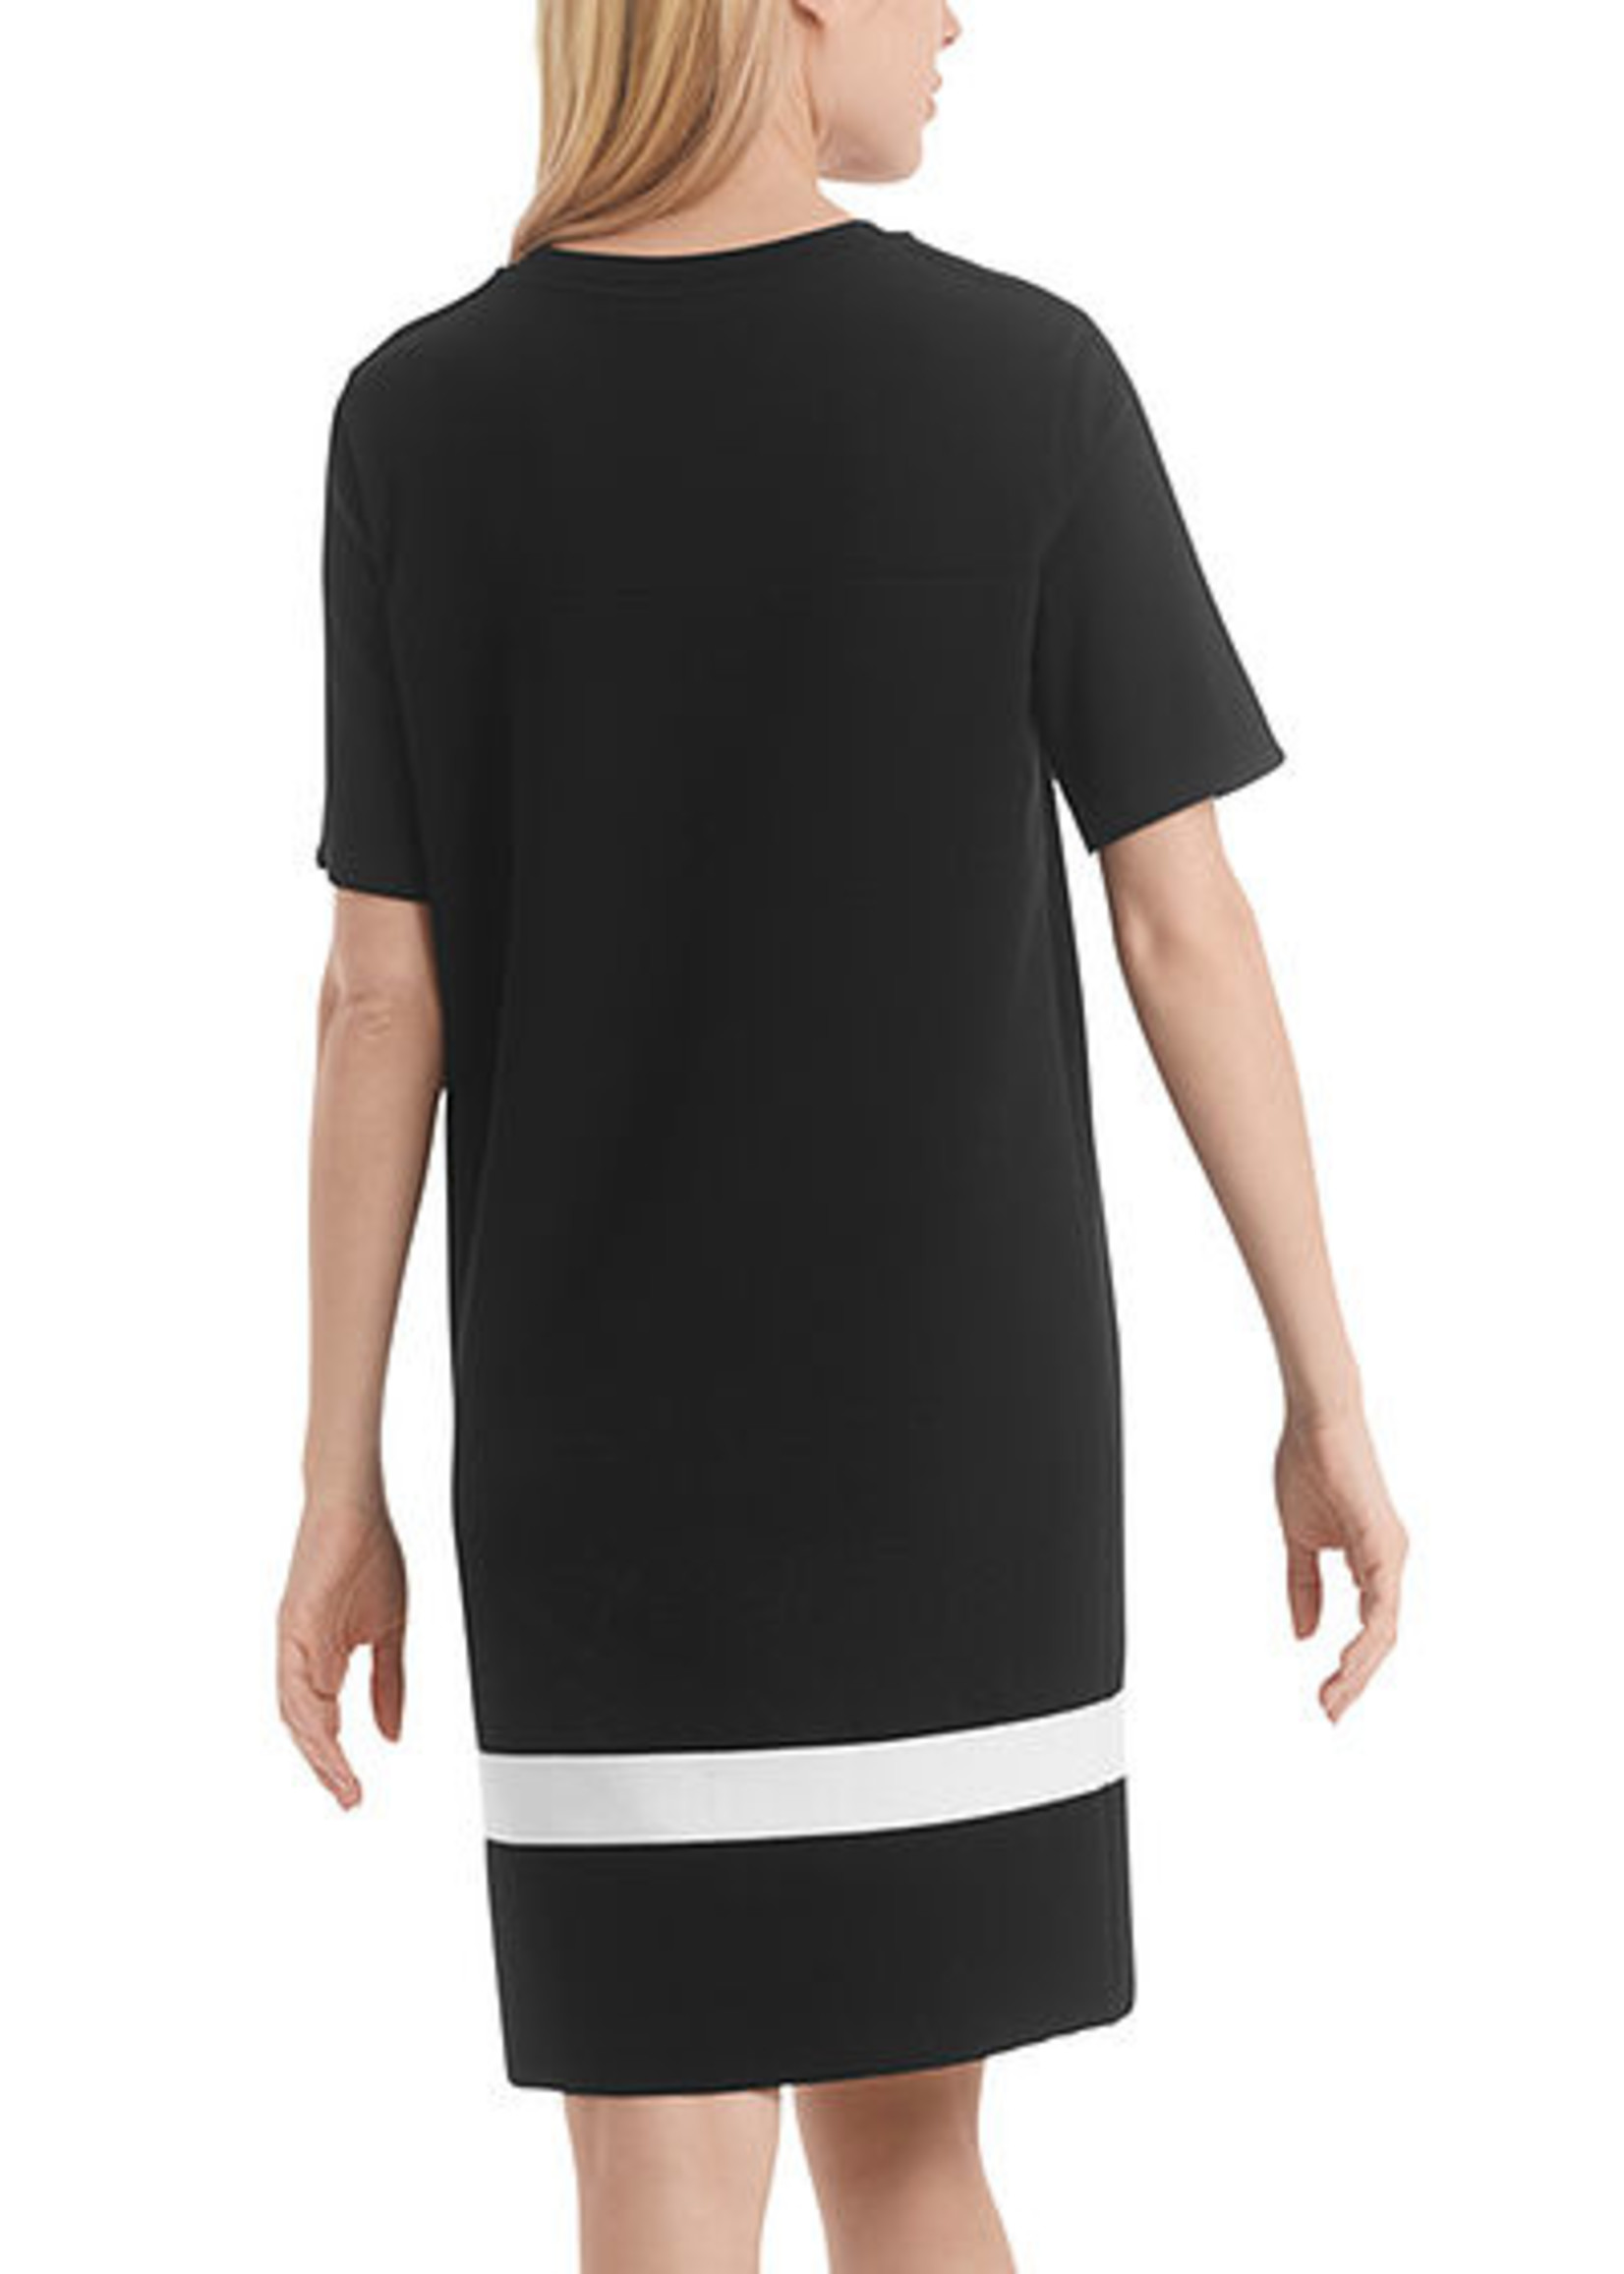 Marccain Sports Jurk RS 21.08 M12 black and white